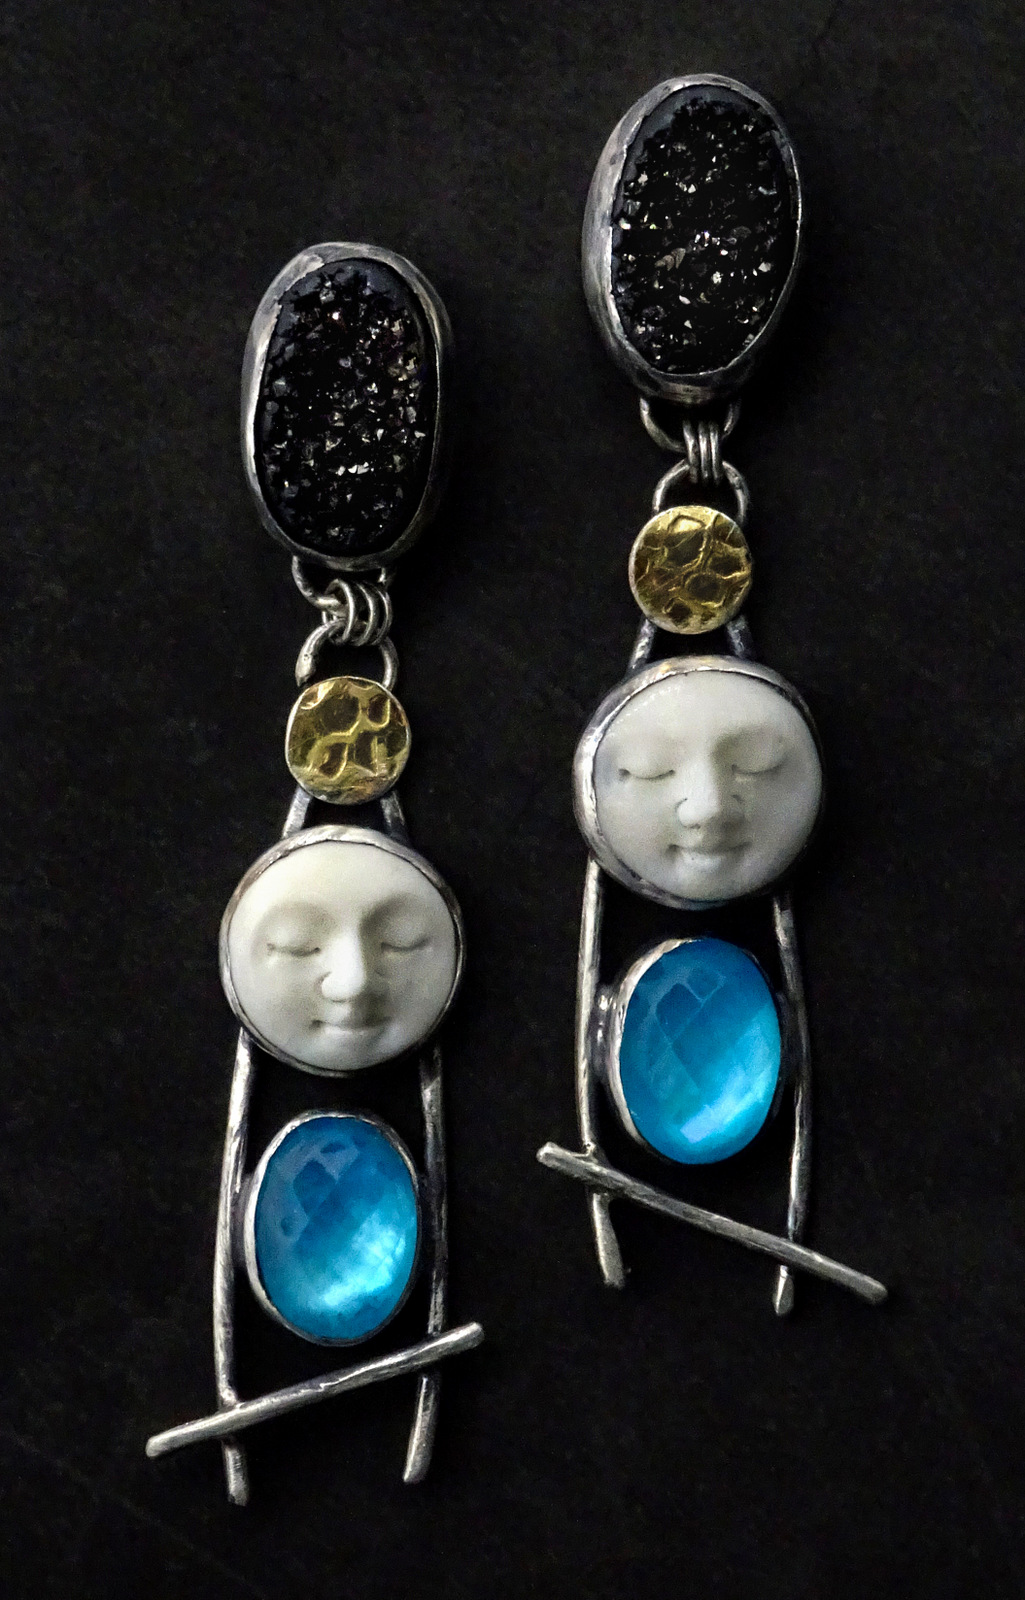 01-Sylvia McCollum, Handcrafted Faces of Courage, Fine Art Silver Jewelry-007.JPG